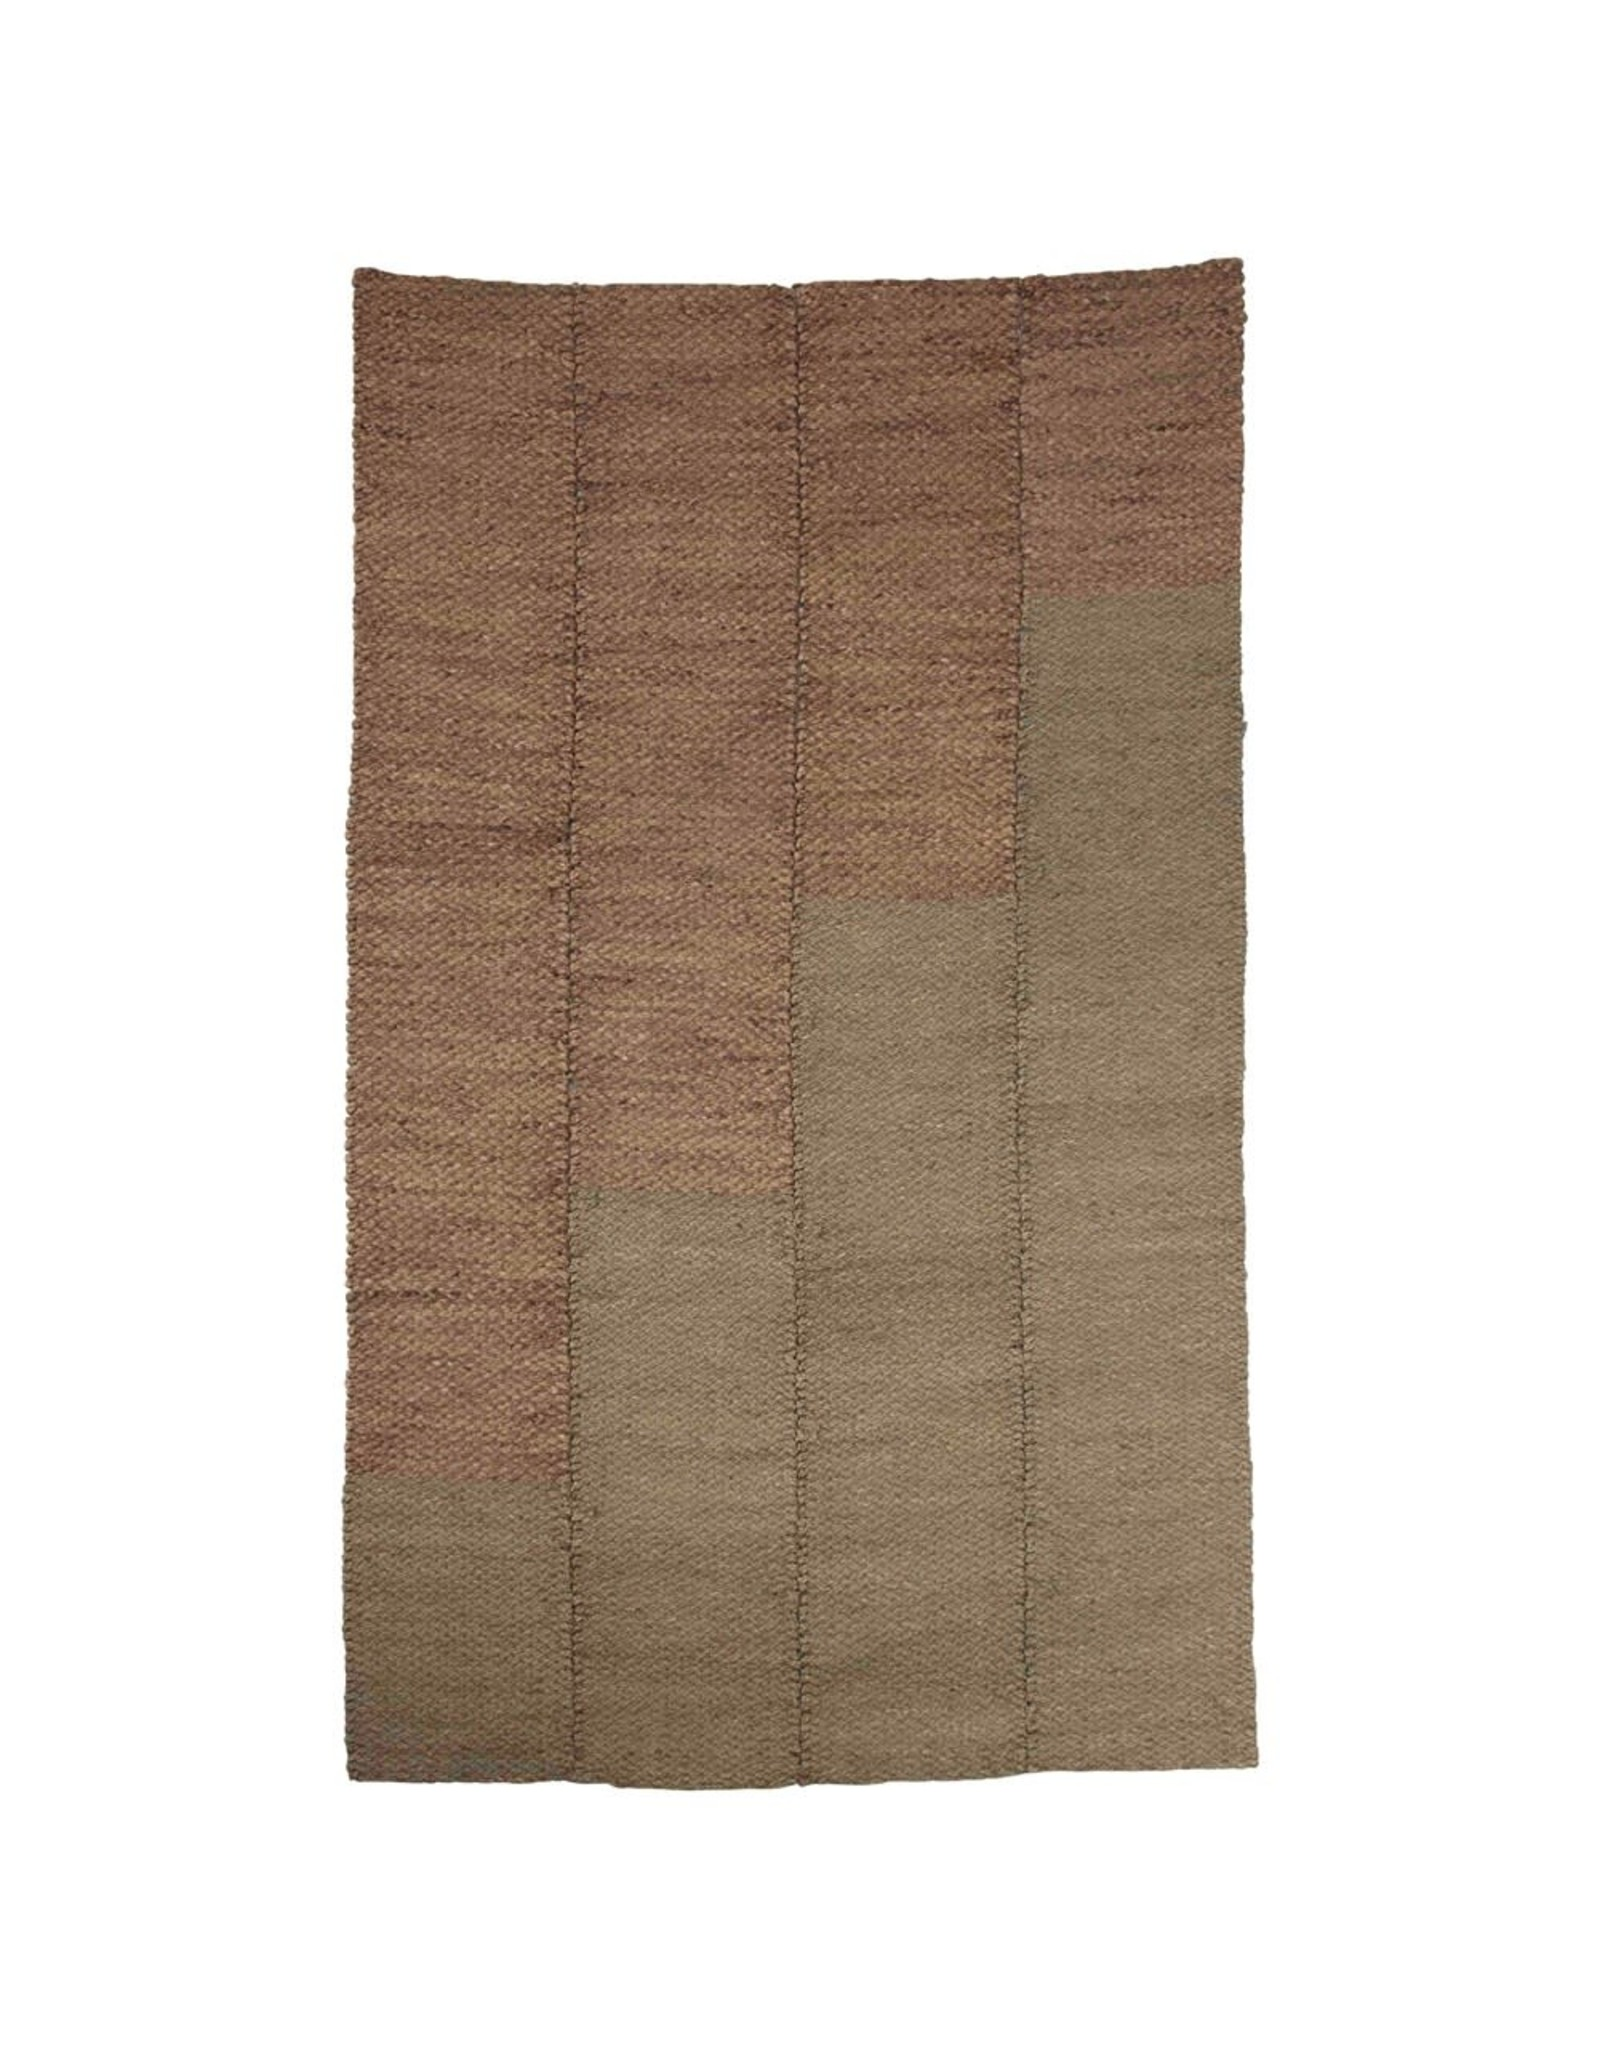 Creative Co-op 5' x 8' Hand-Woven Seagrass & Water Hyacinth Rug